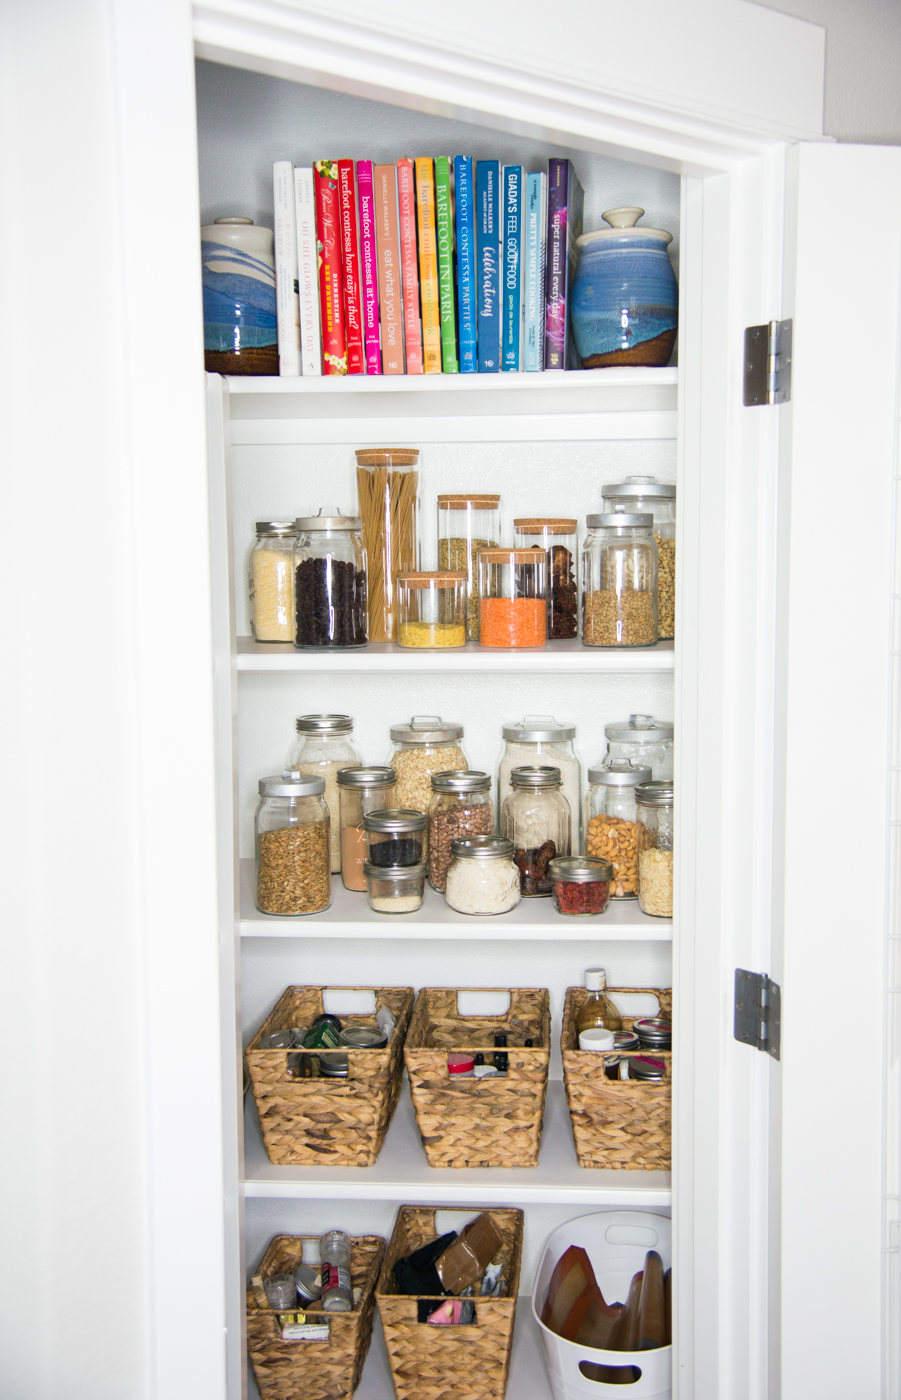 Simplified Guide to Decluttering Your Pantry & Fridge in 3 Simple